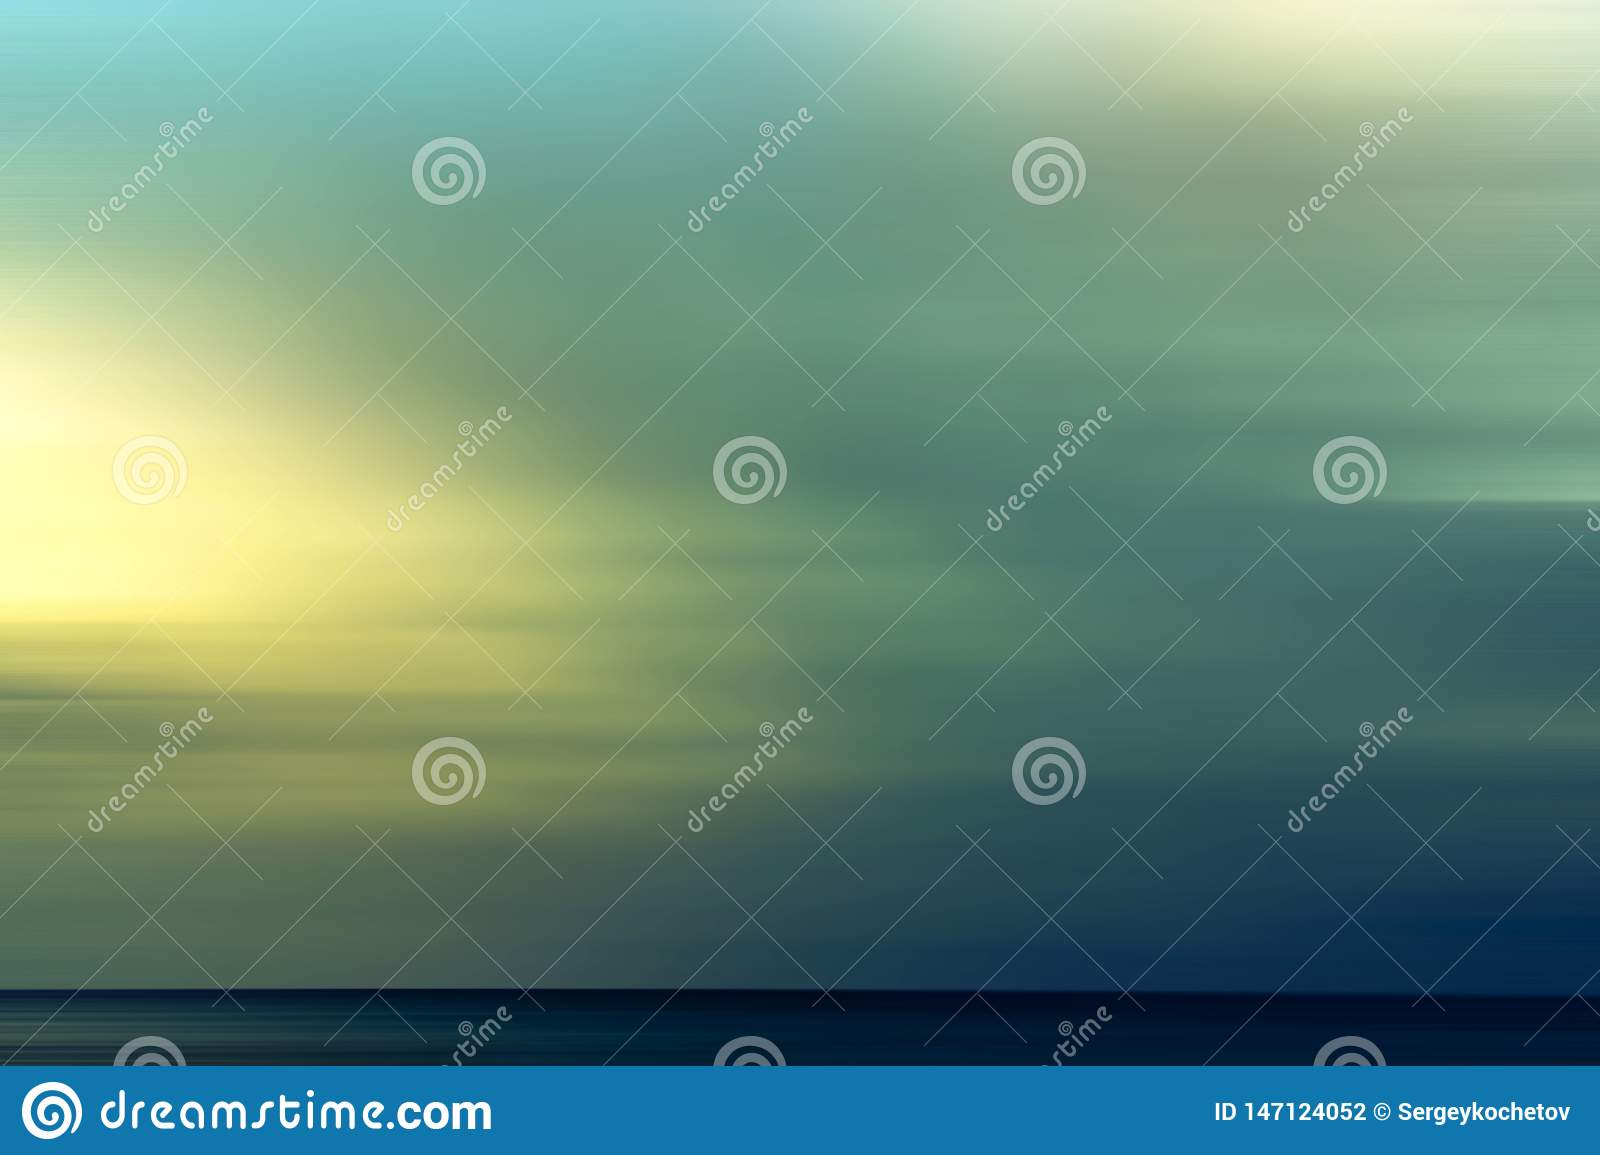 Abstract summer background with the setting sun over the sea